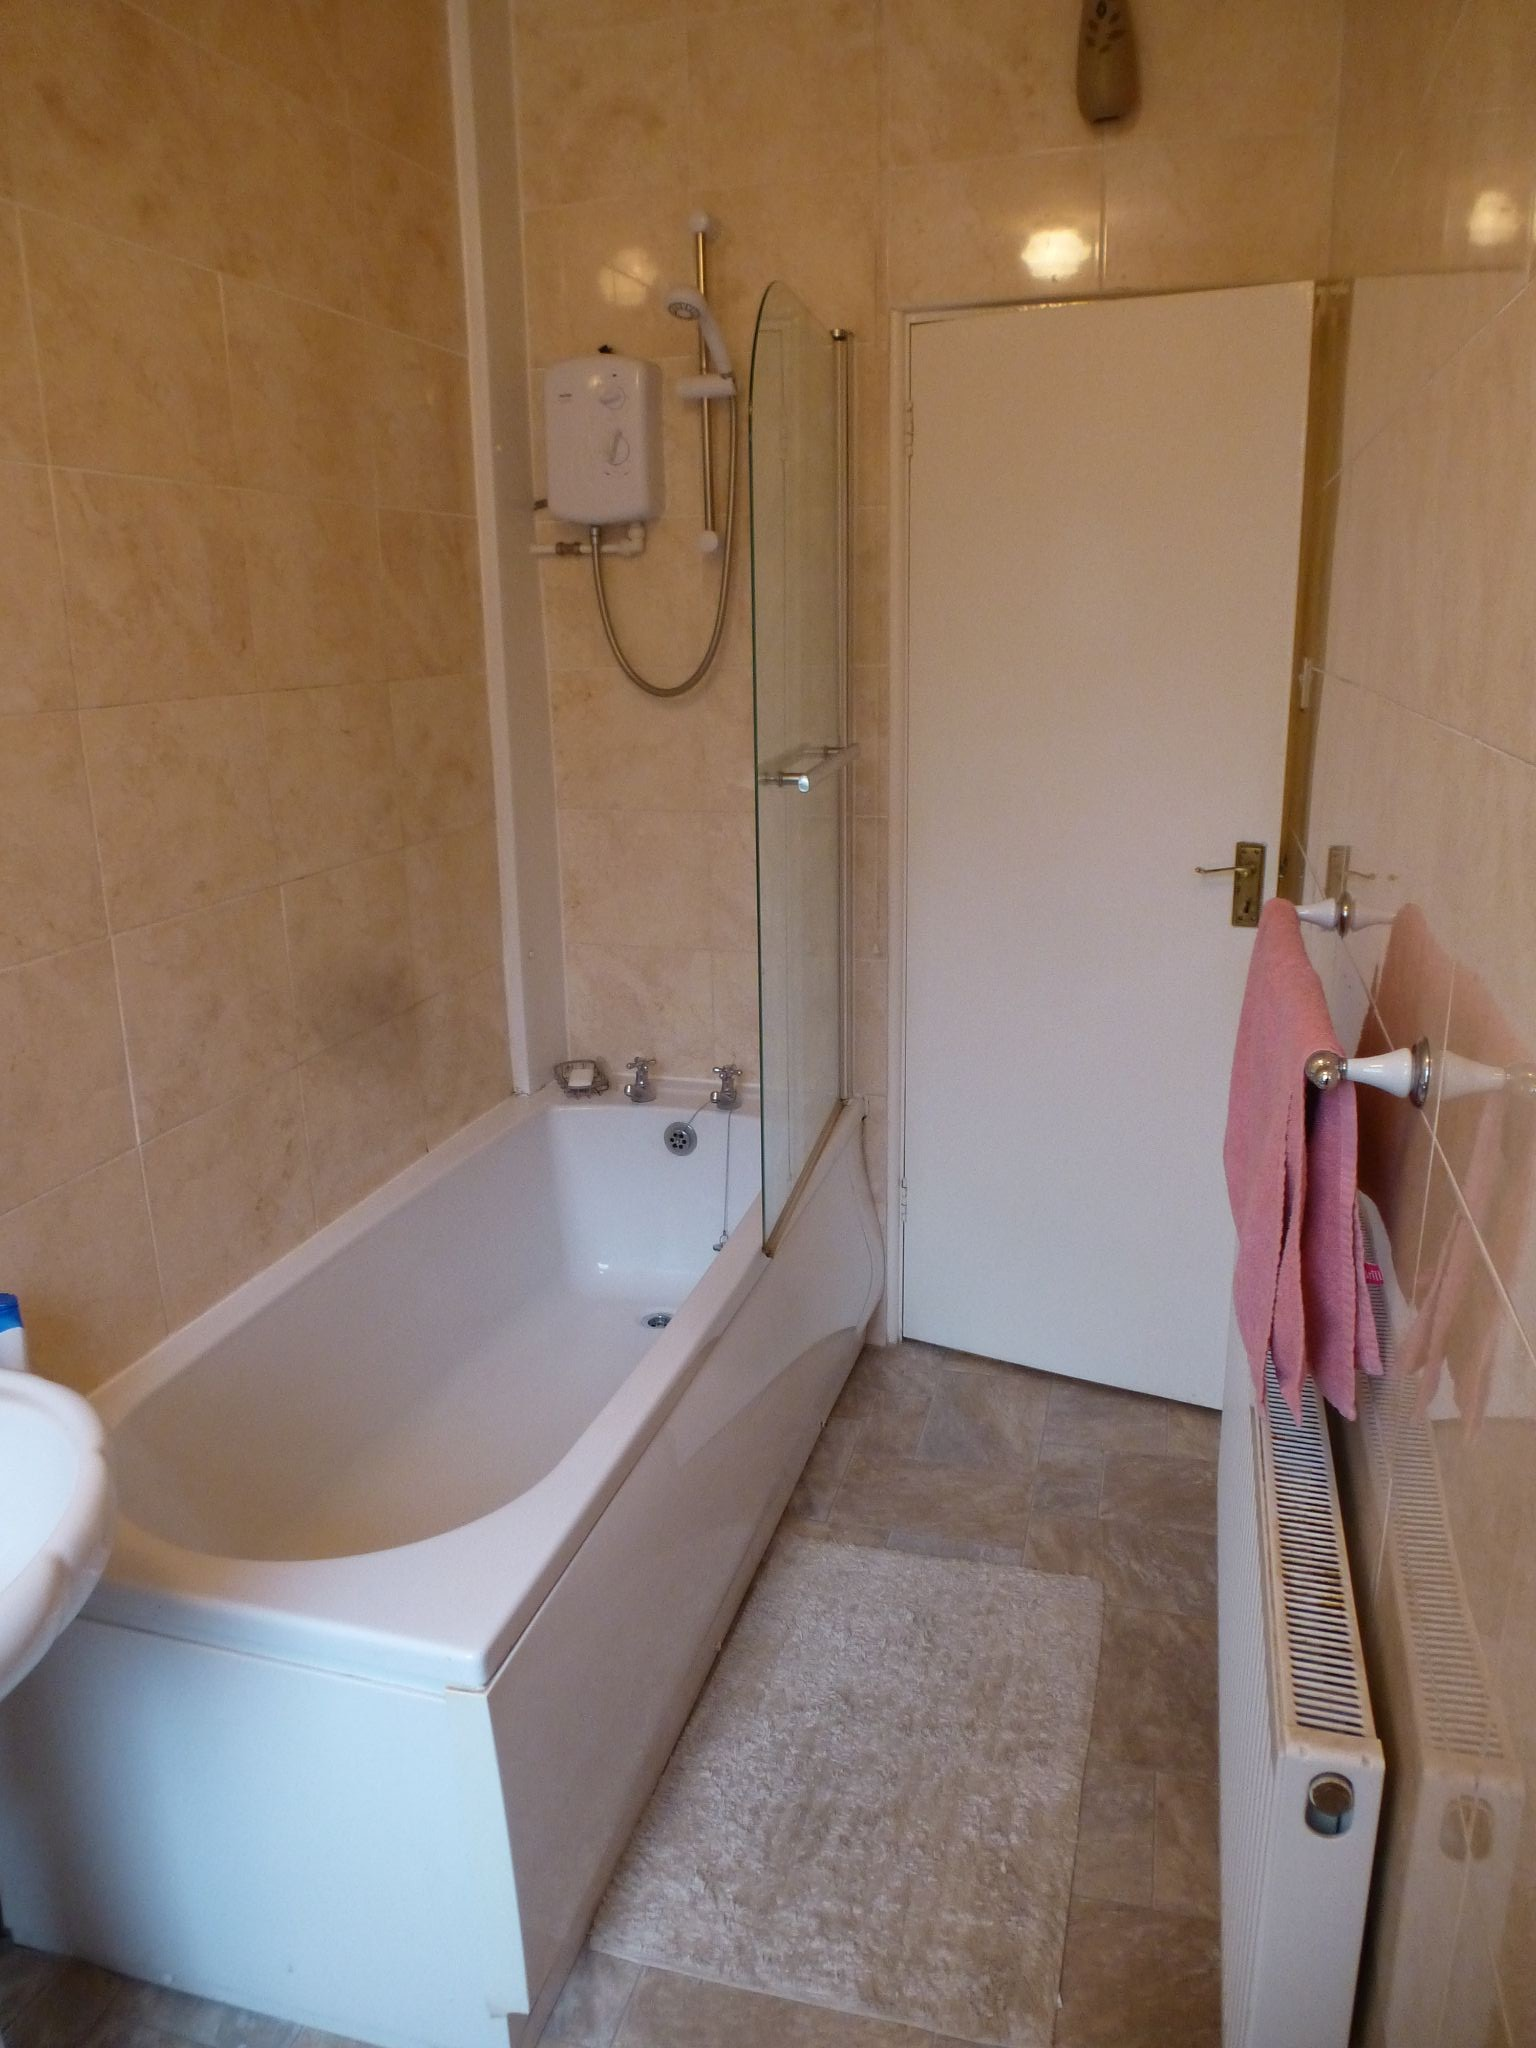 Image 3 of 3 of BATHROOM, on Accommodation Comprising for